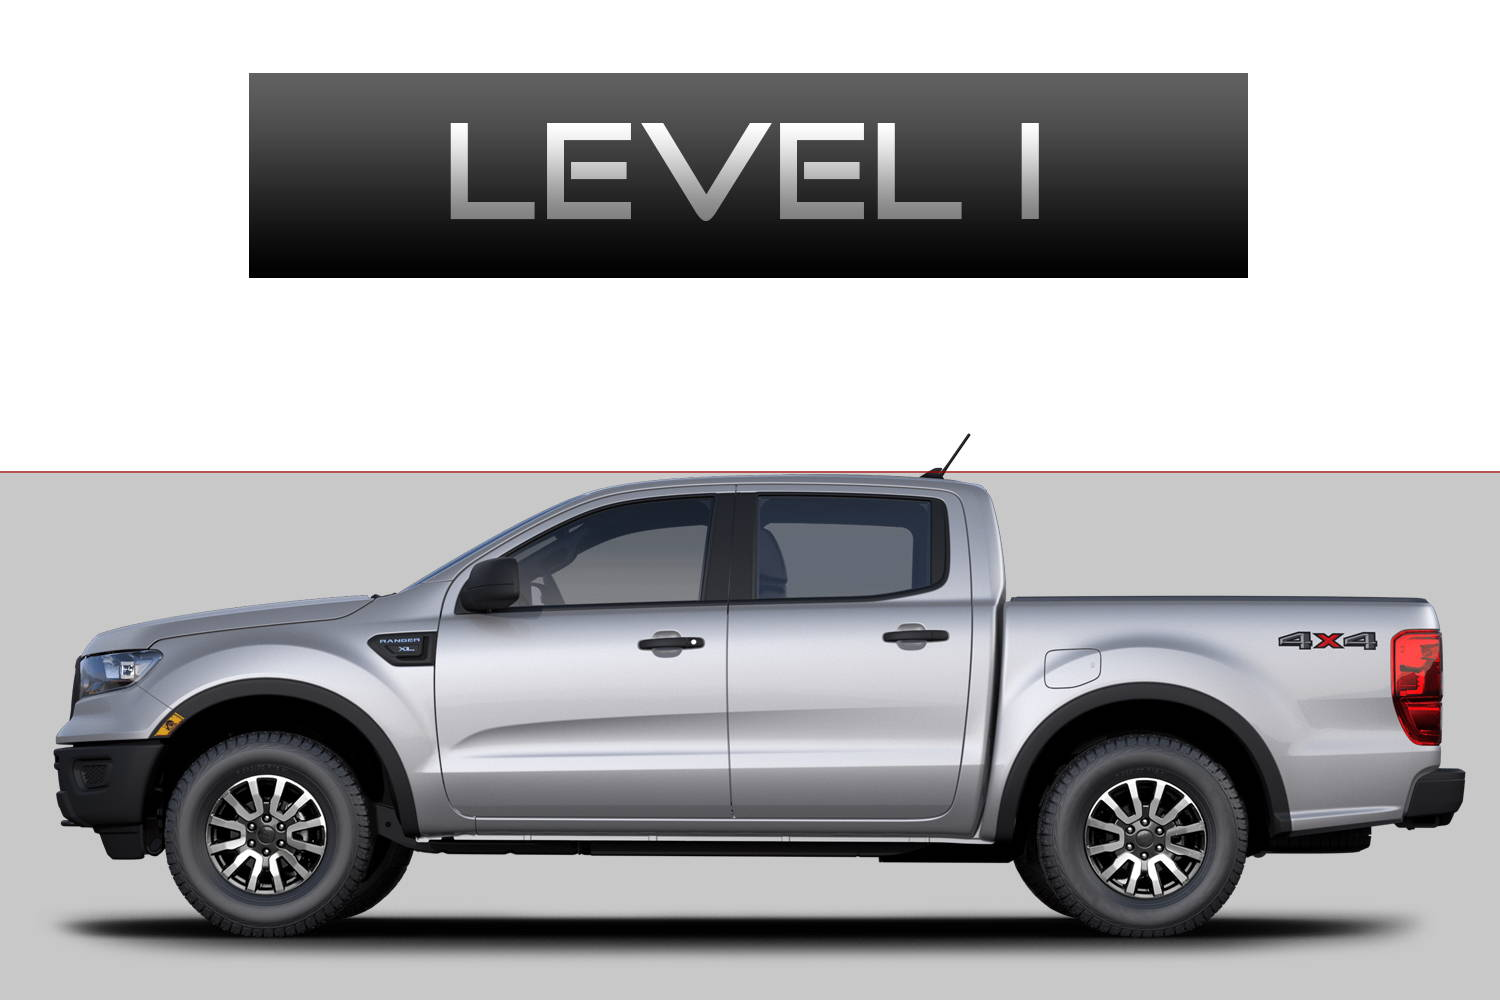 Ford Ranger Off-Road Customizing Package Level 1 by 3C Trucks